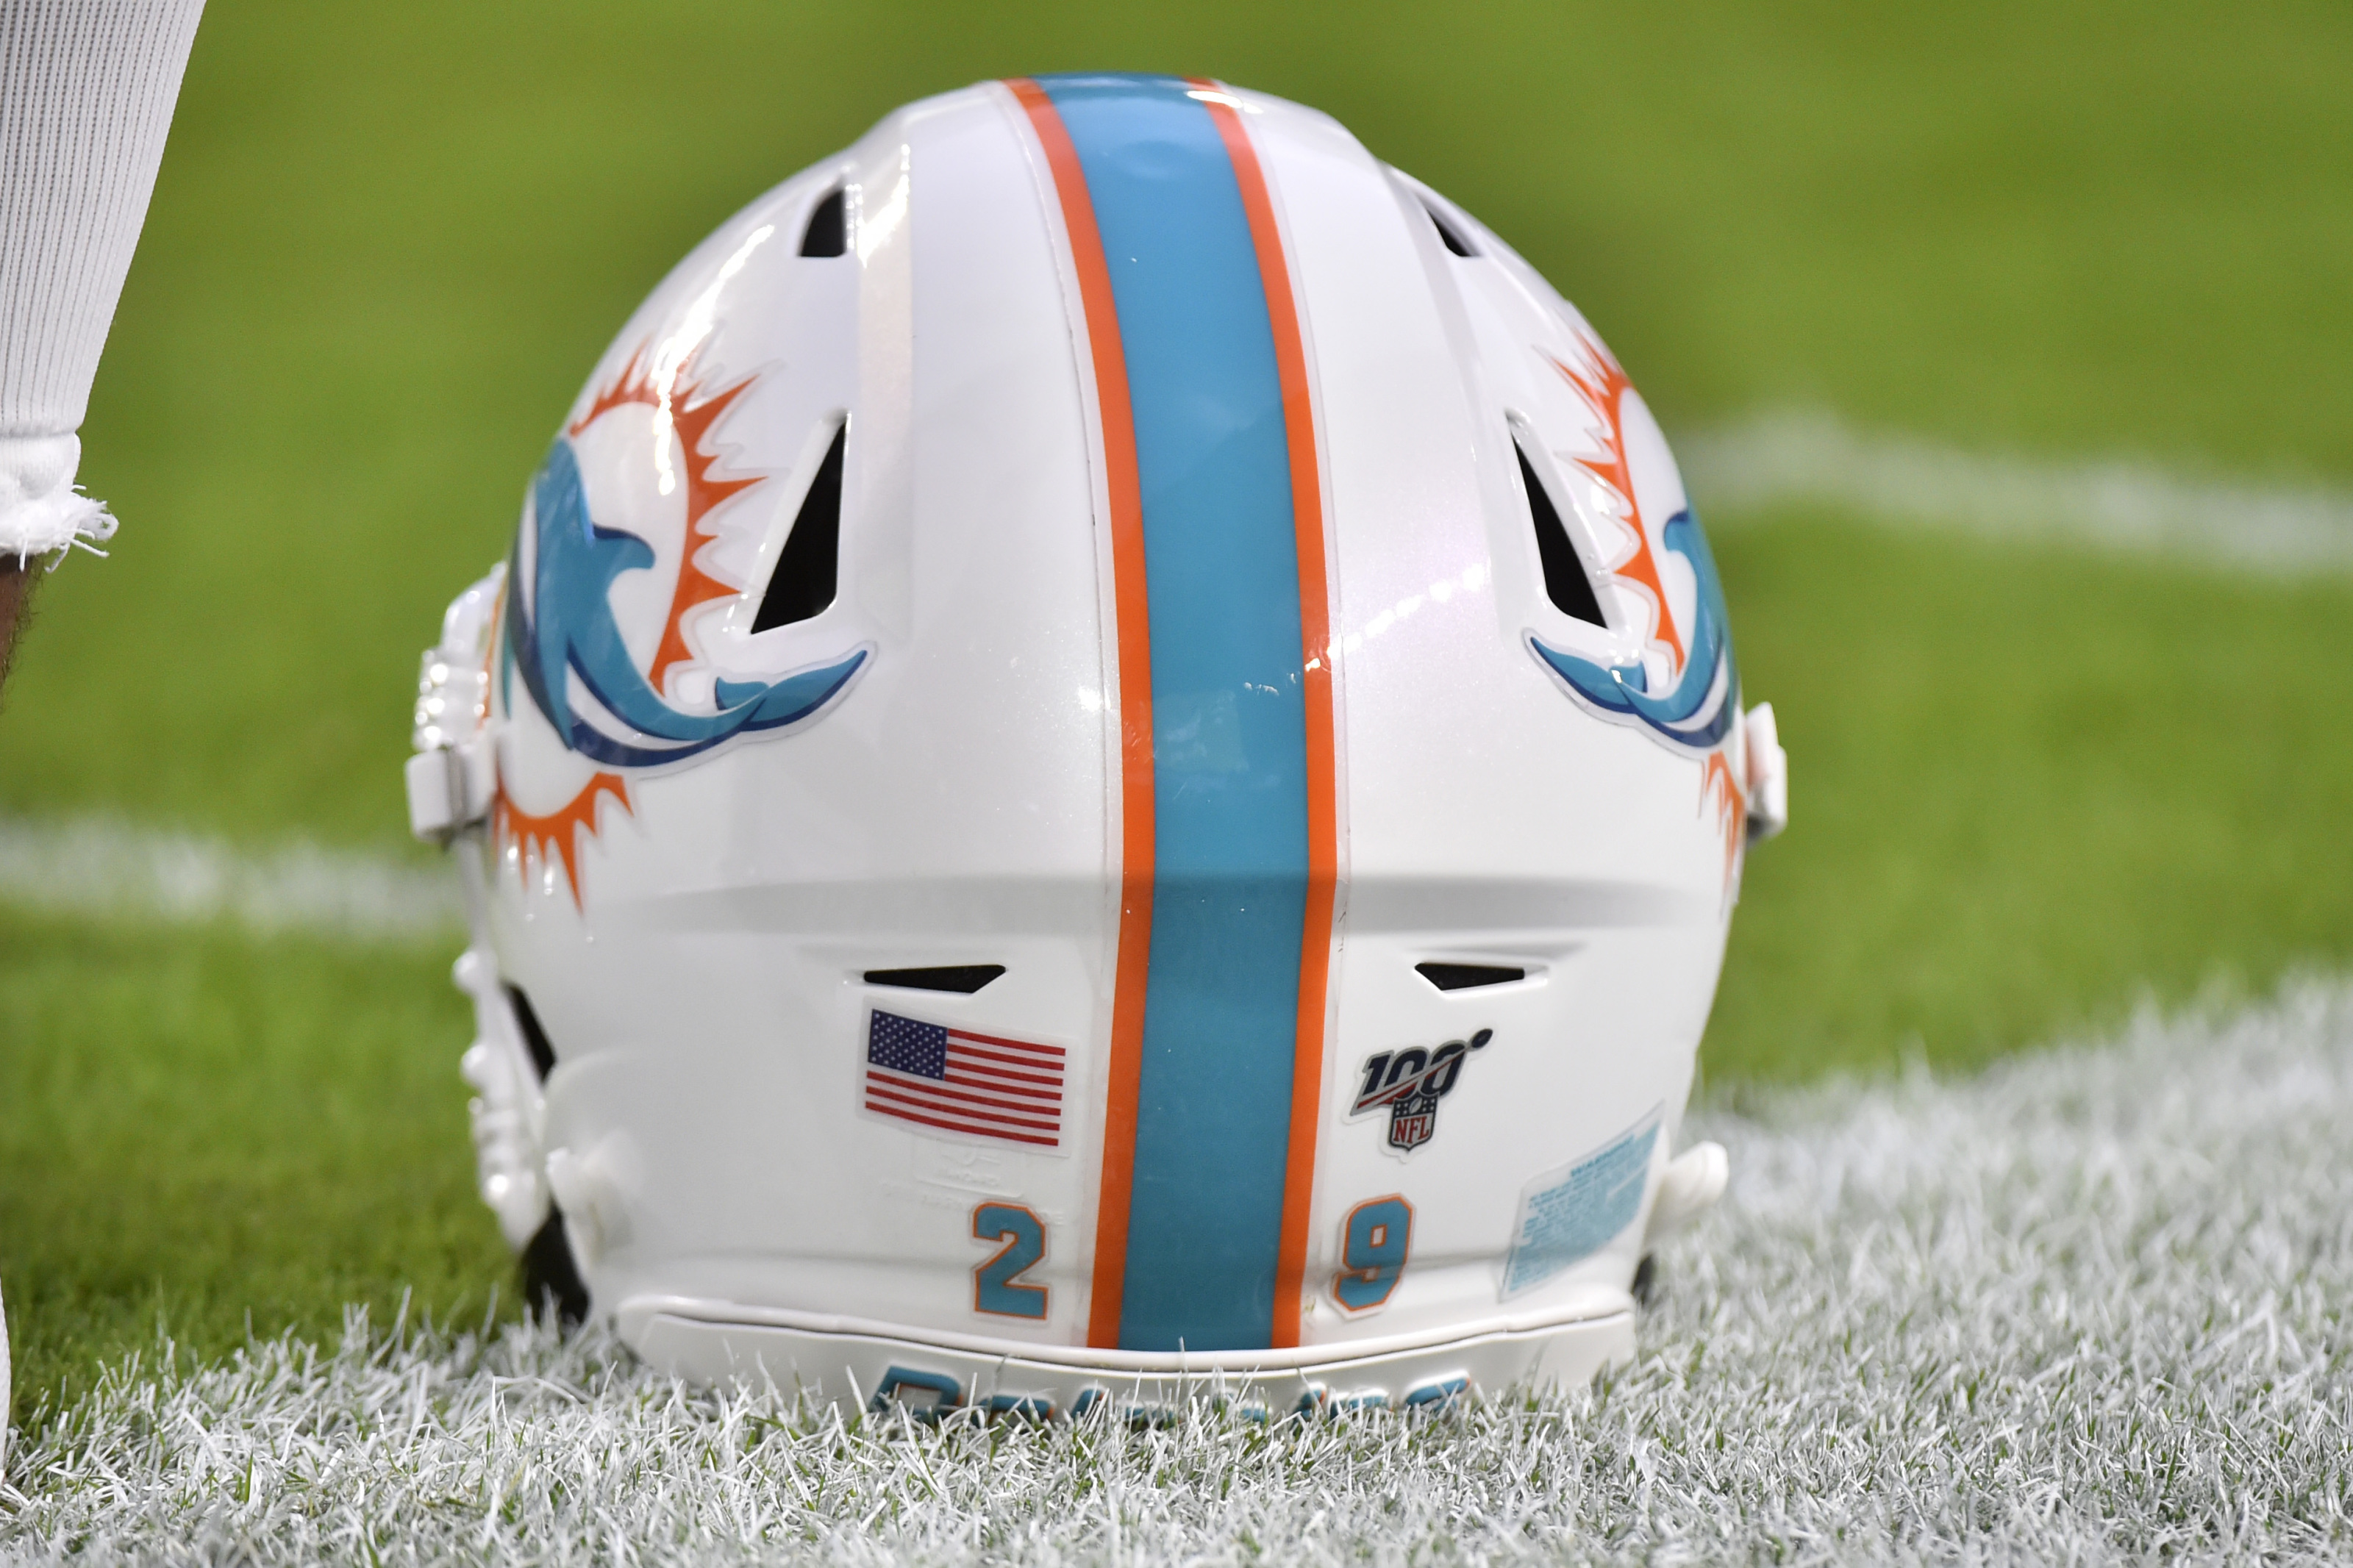 Miami Dolphins may see spike in injuries if history repeats itself